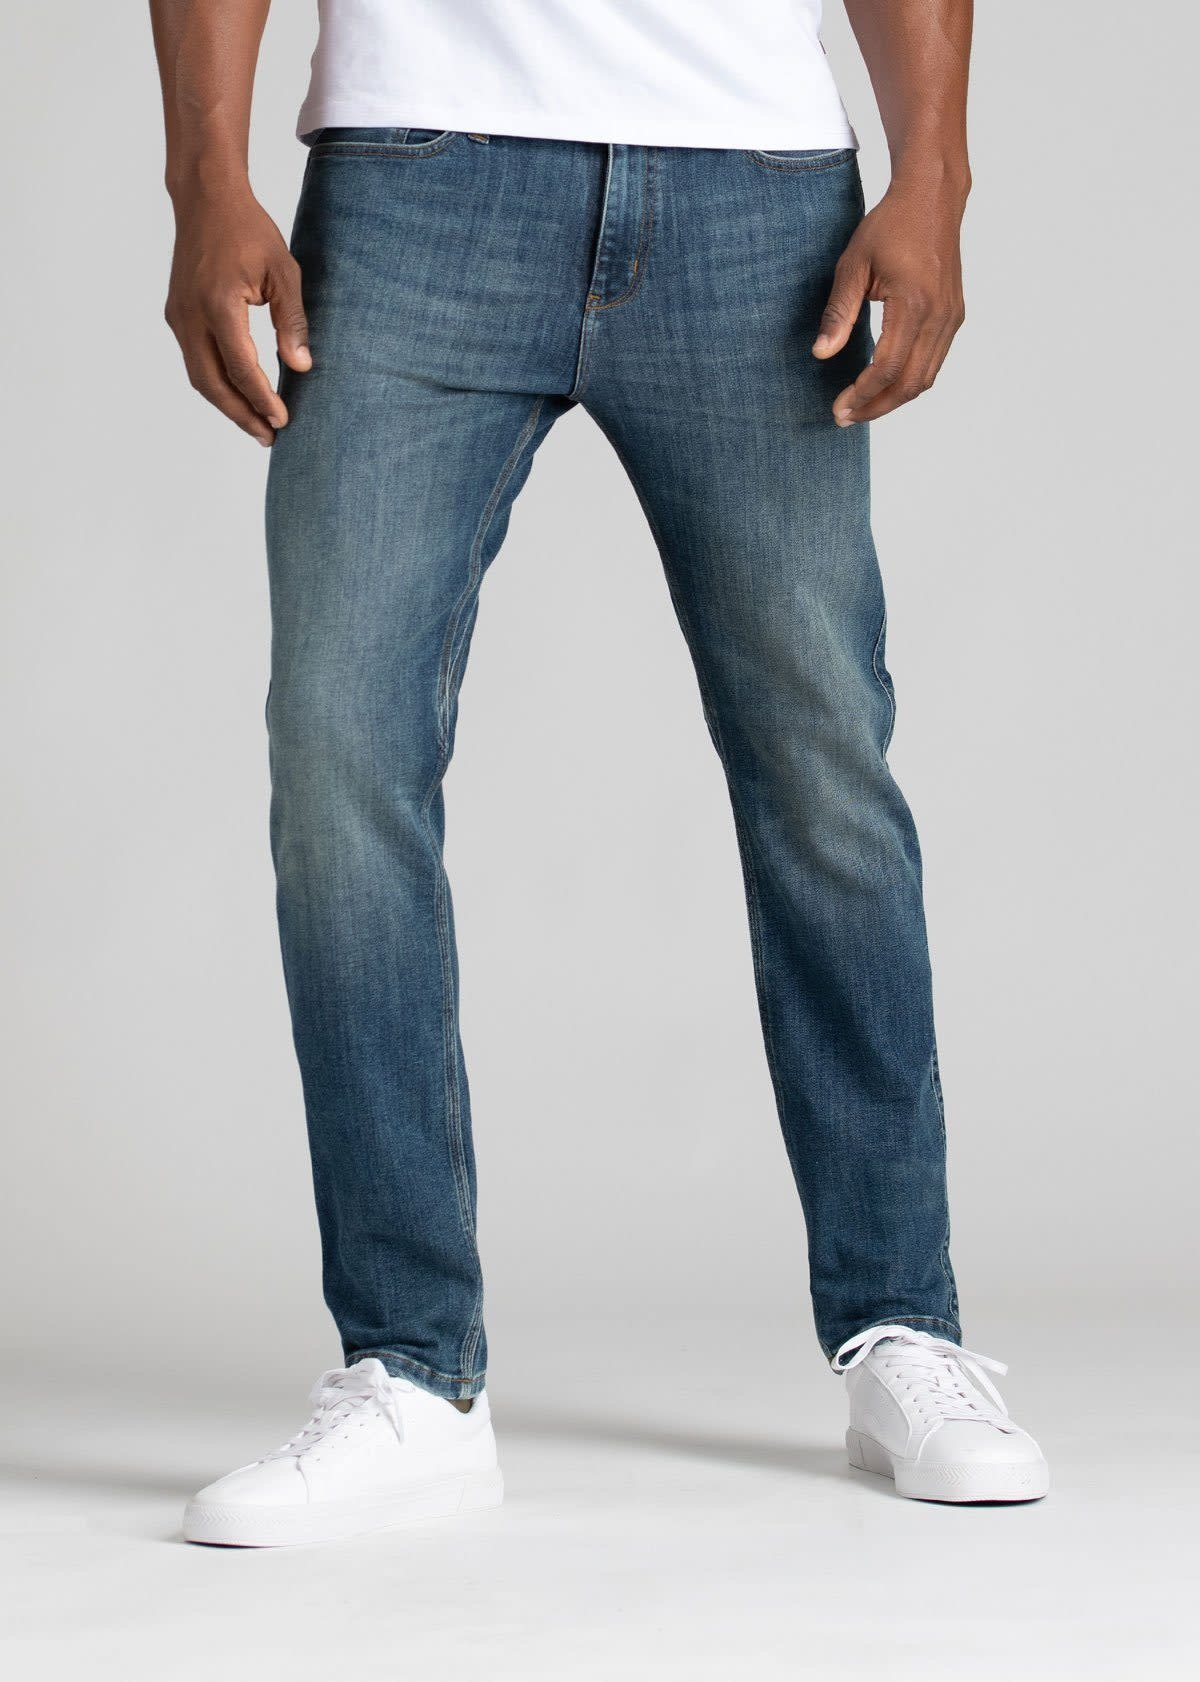 DUER Performance Denim Slim-1